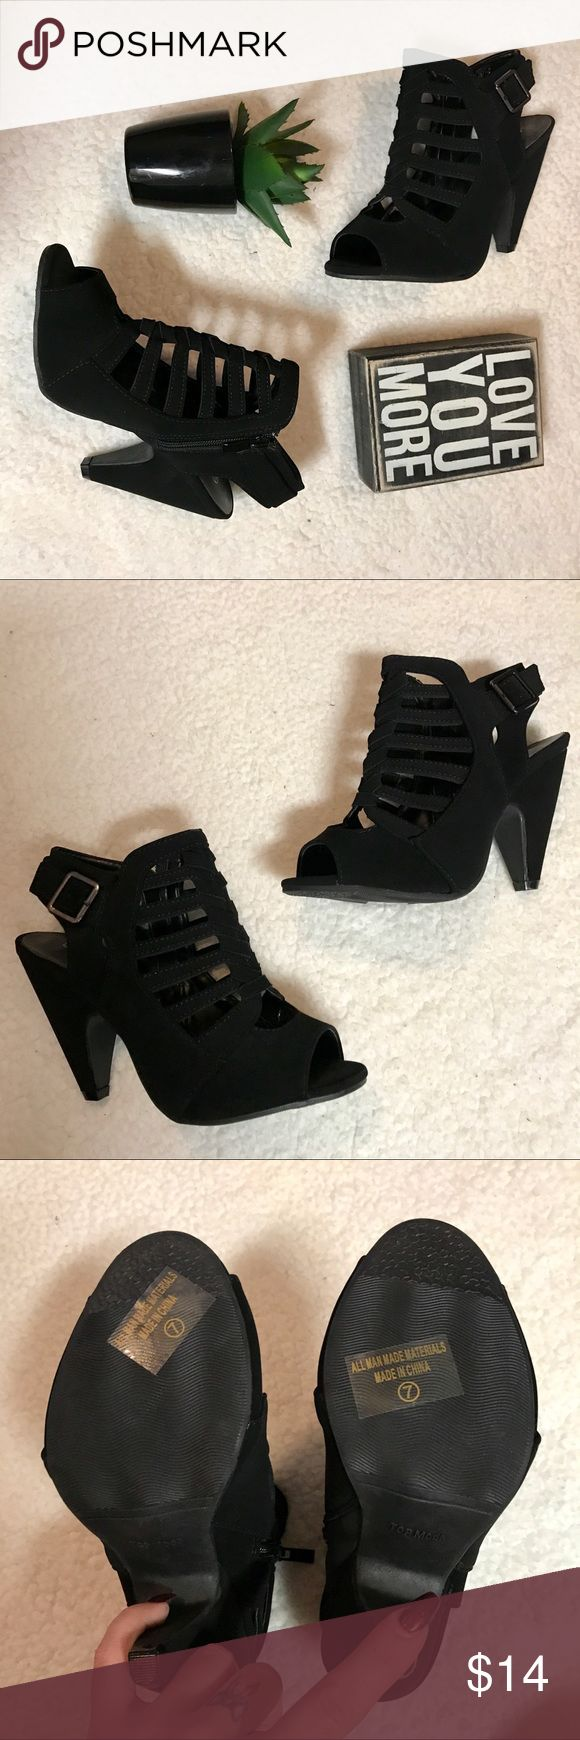 Black heels Sz 7 New without tags black heels super cute stealth short comfortable heels. Size 7 very good condition. Zippers so easy to get on and off. Perfect condition. Under STEVE MADDEN for exposure brand is TOP MODA ⚜️ Steve Madden Shoes Heels